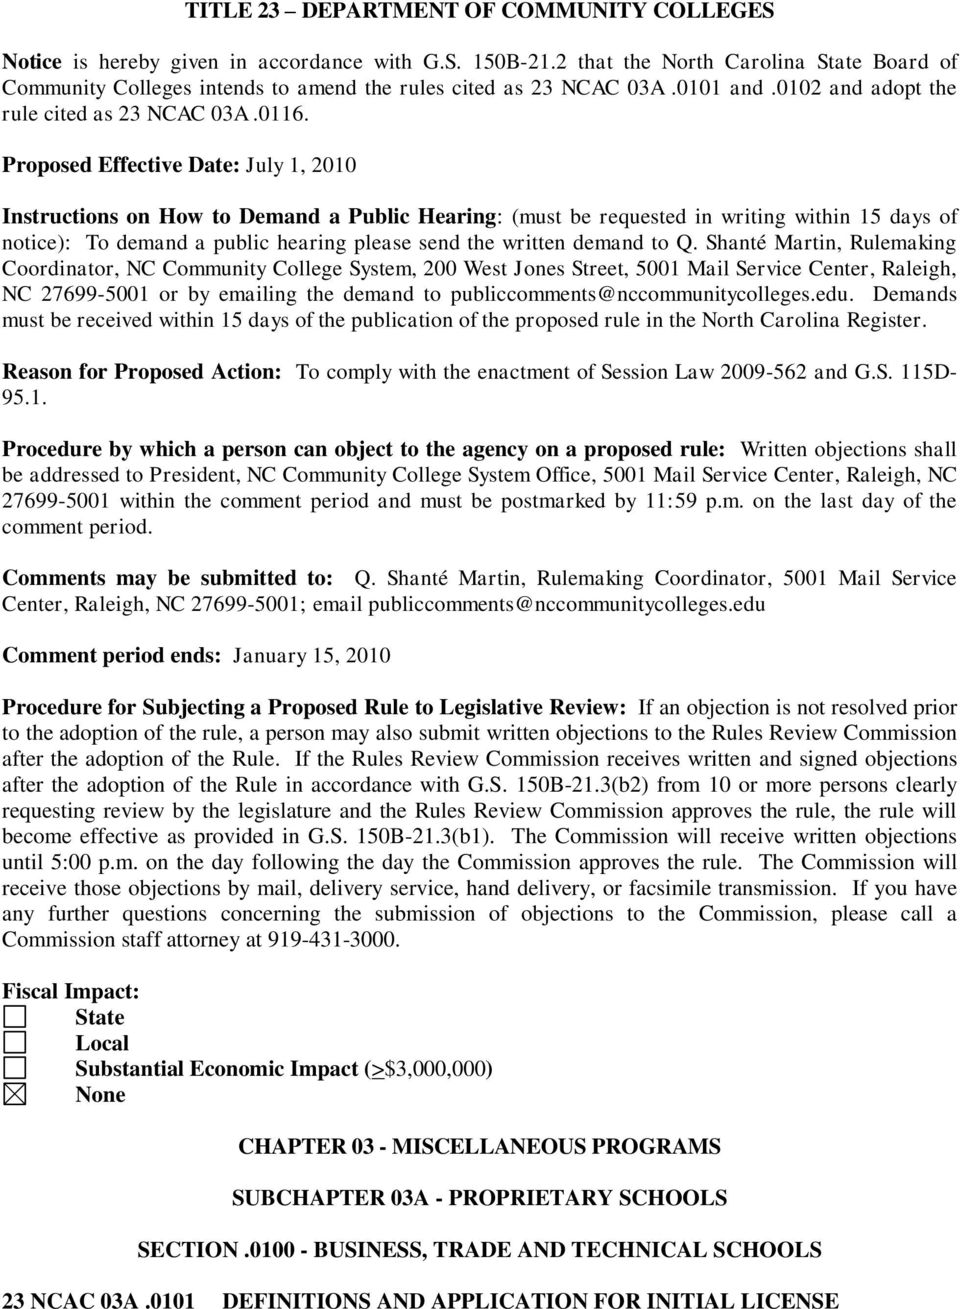 Proposed Effective Date: July 1, 2010 Instructions on How to Demand a Public Hearing: (must be requested in writing within 15 days of notice): To demand a public hearing please send the written